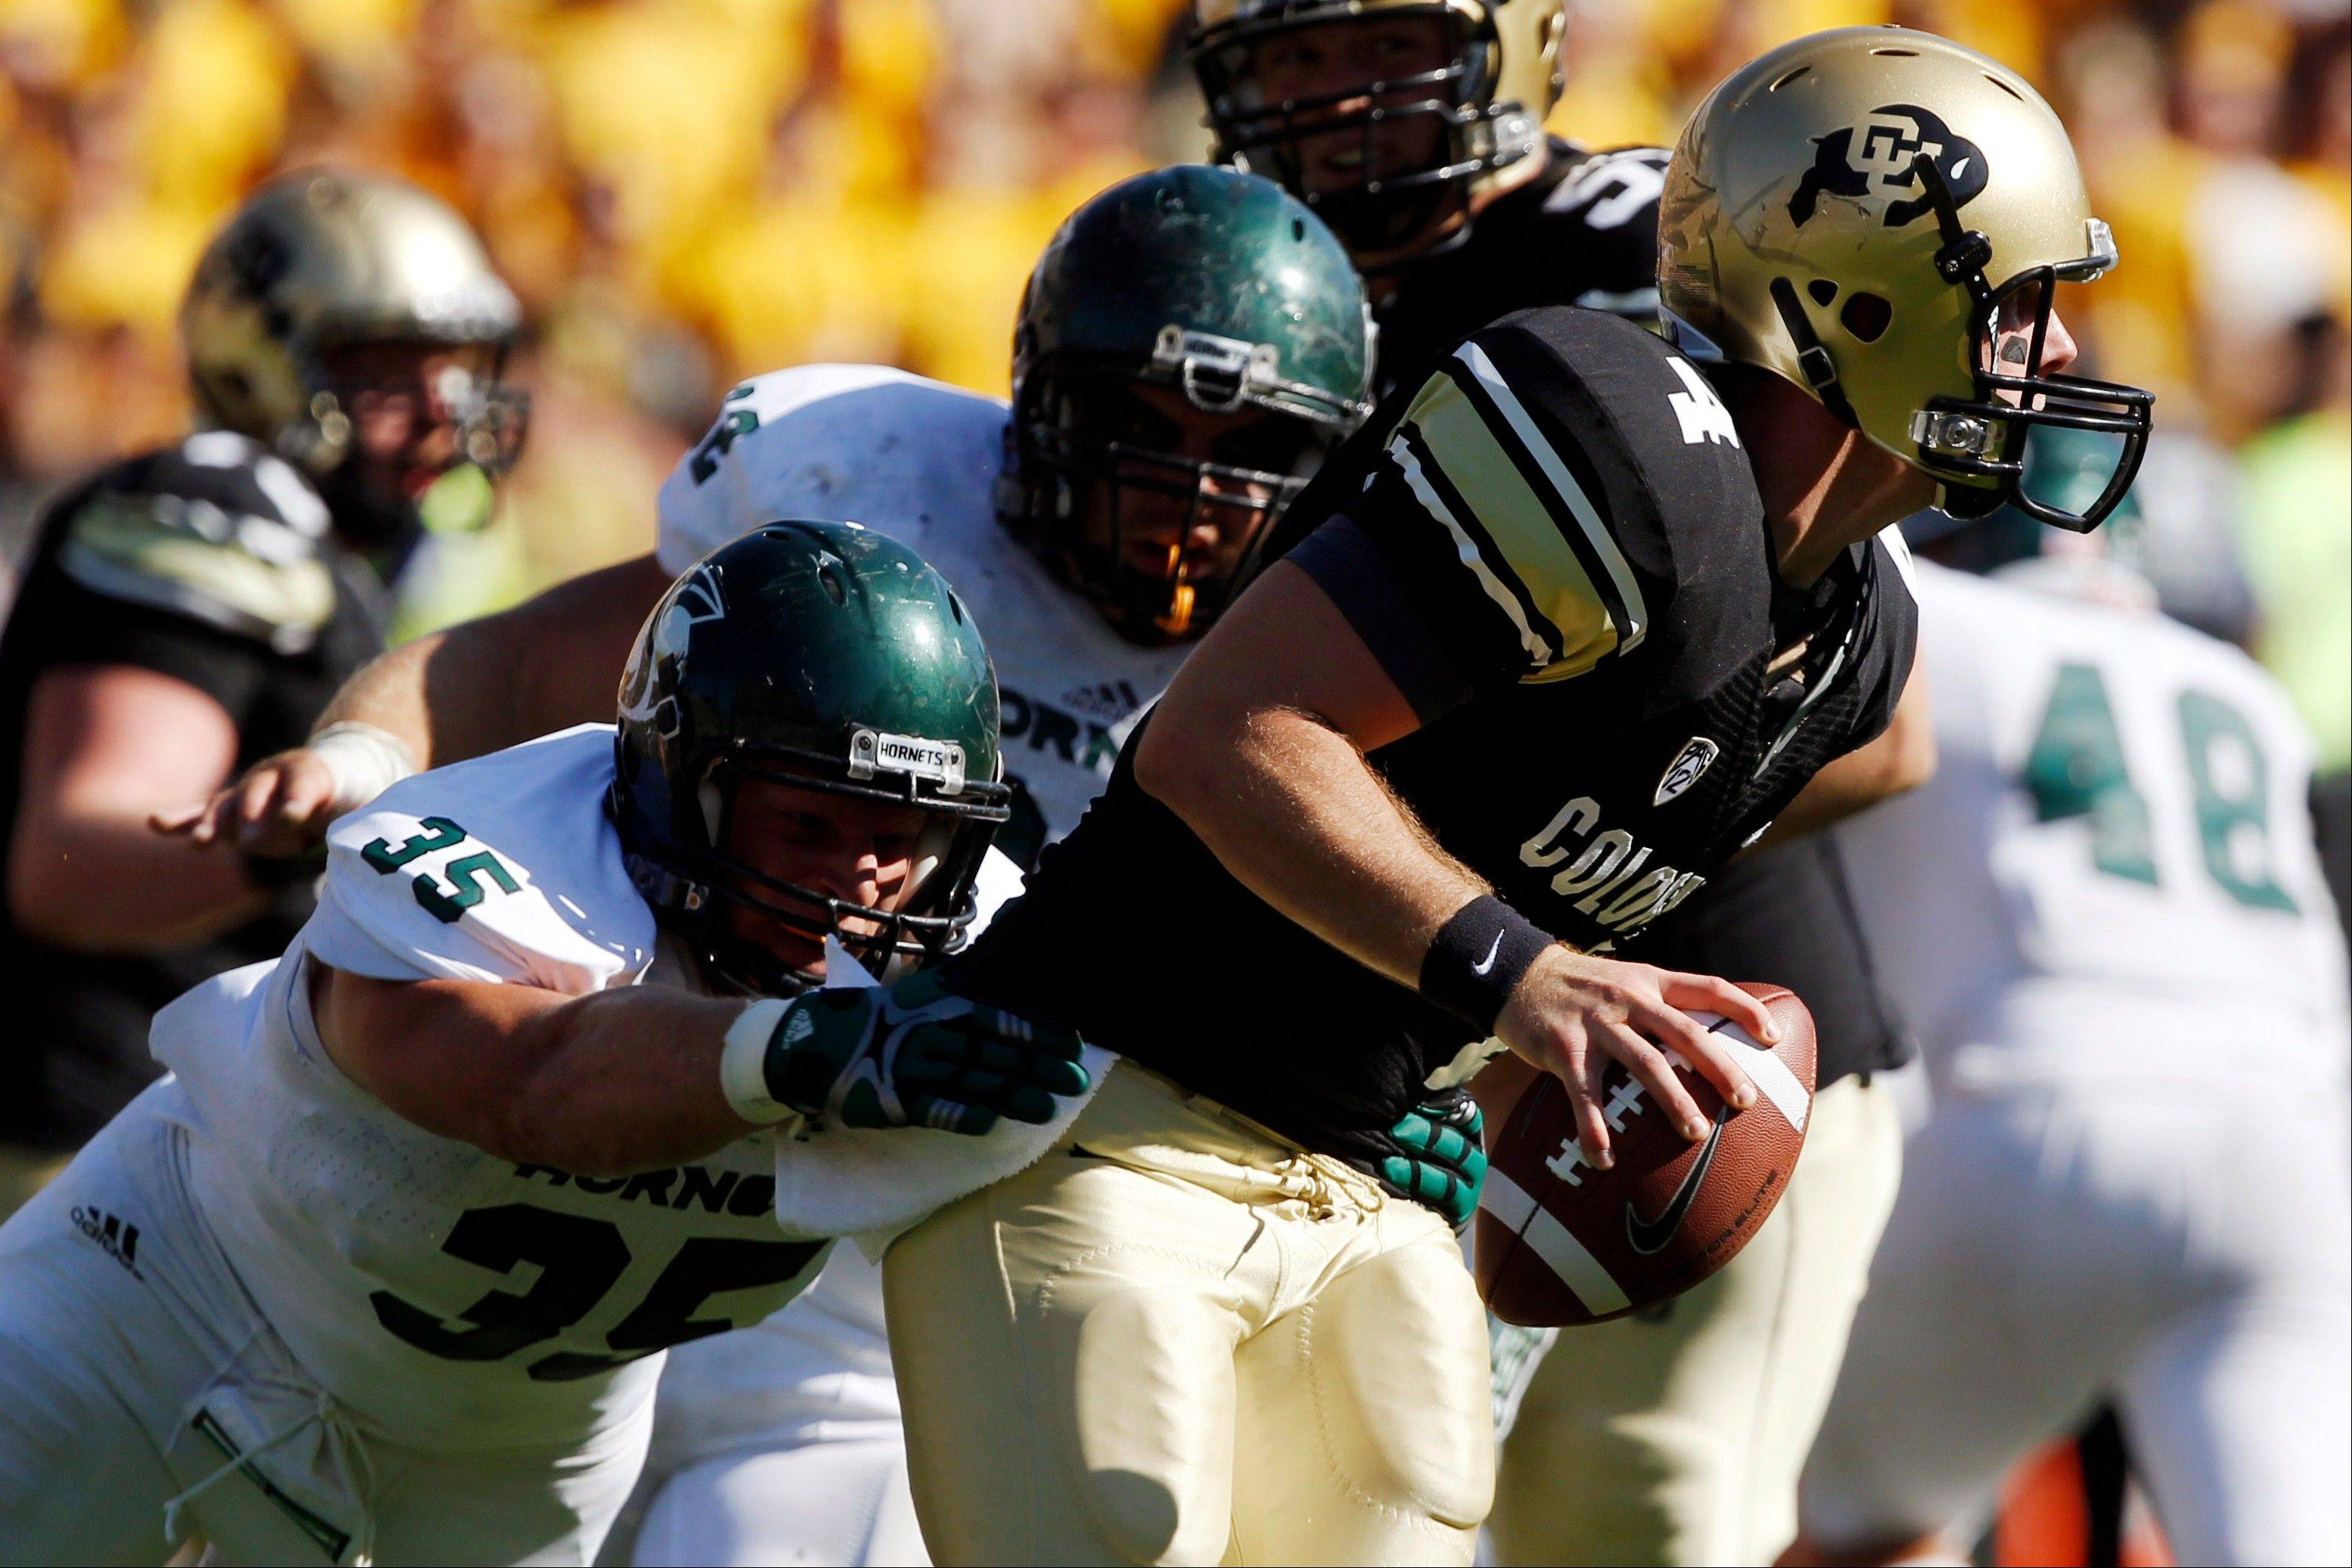 Sacramento State defensive lineman Jaycee Totty, left, pulls down Colorado quarterback Jordan Webb for a sack in the fourth quarter of their NCAA college football game in Boulder, Colo., Saturday. Sacramento State won 30-28.